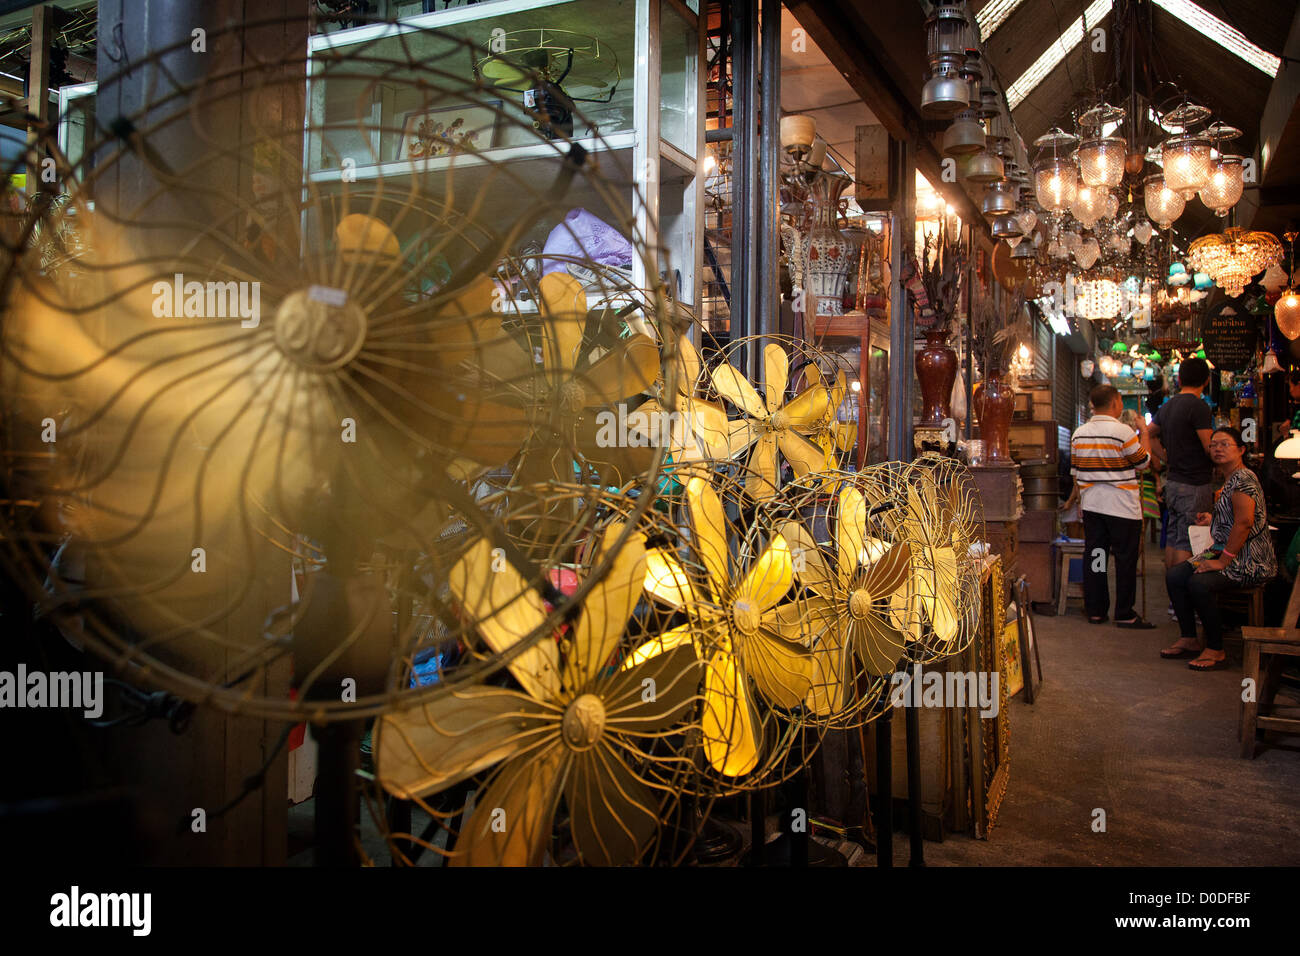 HOME DECOR SHOP CHATUCHAK WEEKEND MARKET THE BIGGEST MARKET IN ASIA  SPREADING OVER 30 ACRES BANGKOK THAILAND